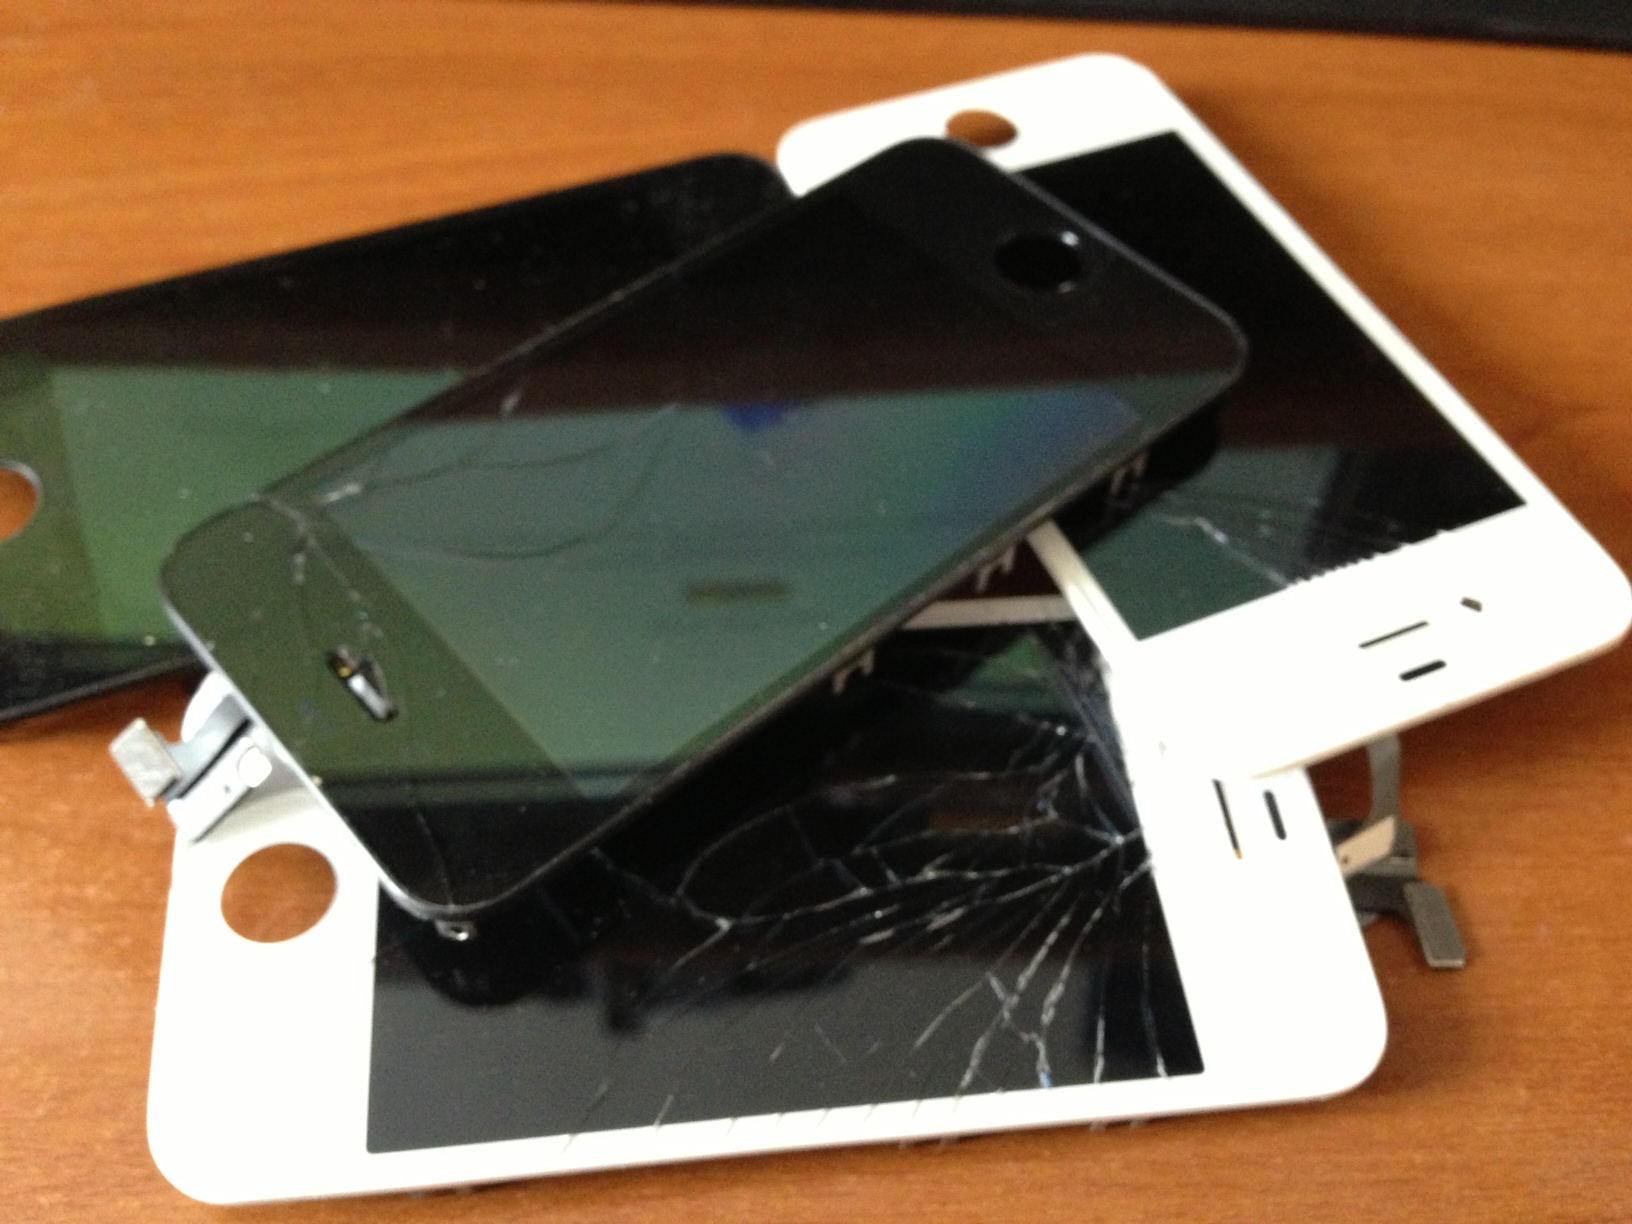 Permalink to Damaged Iphone 5s For Sale